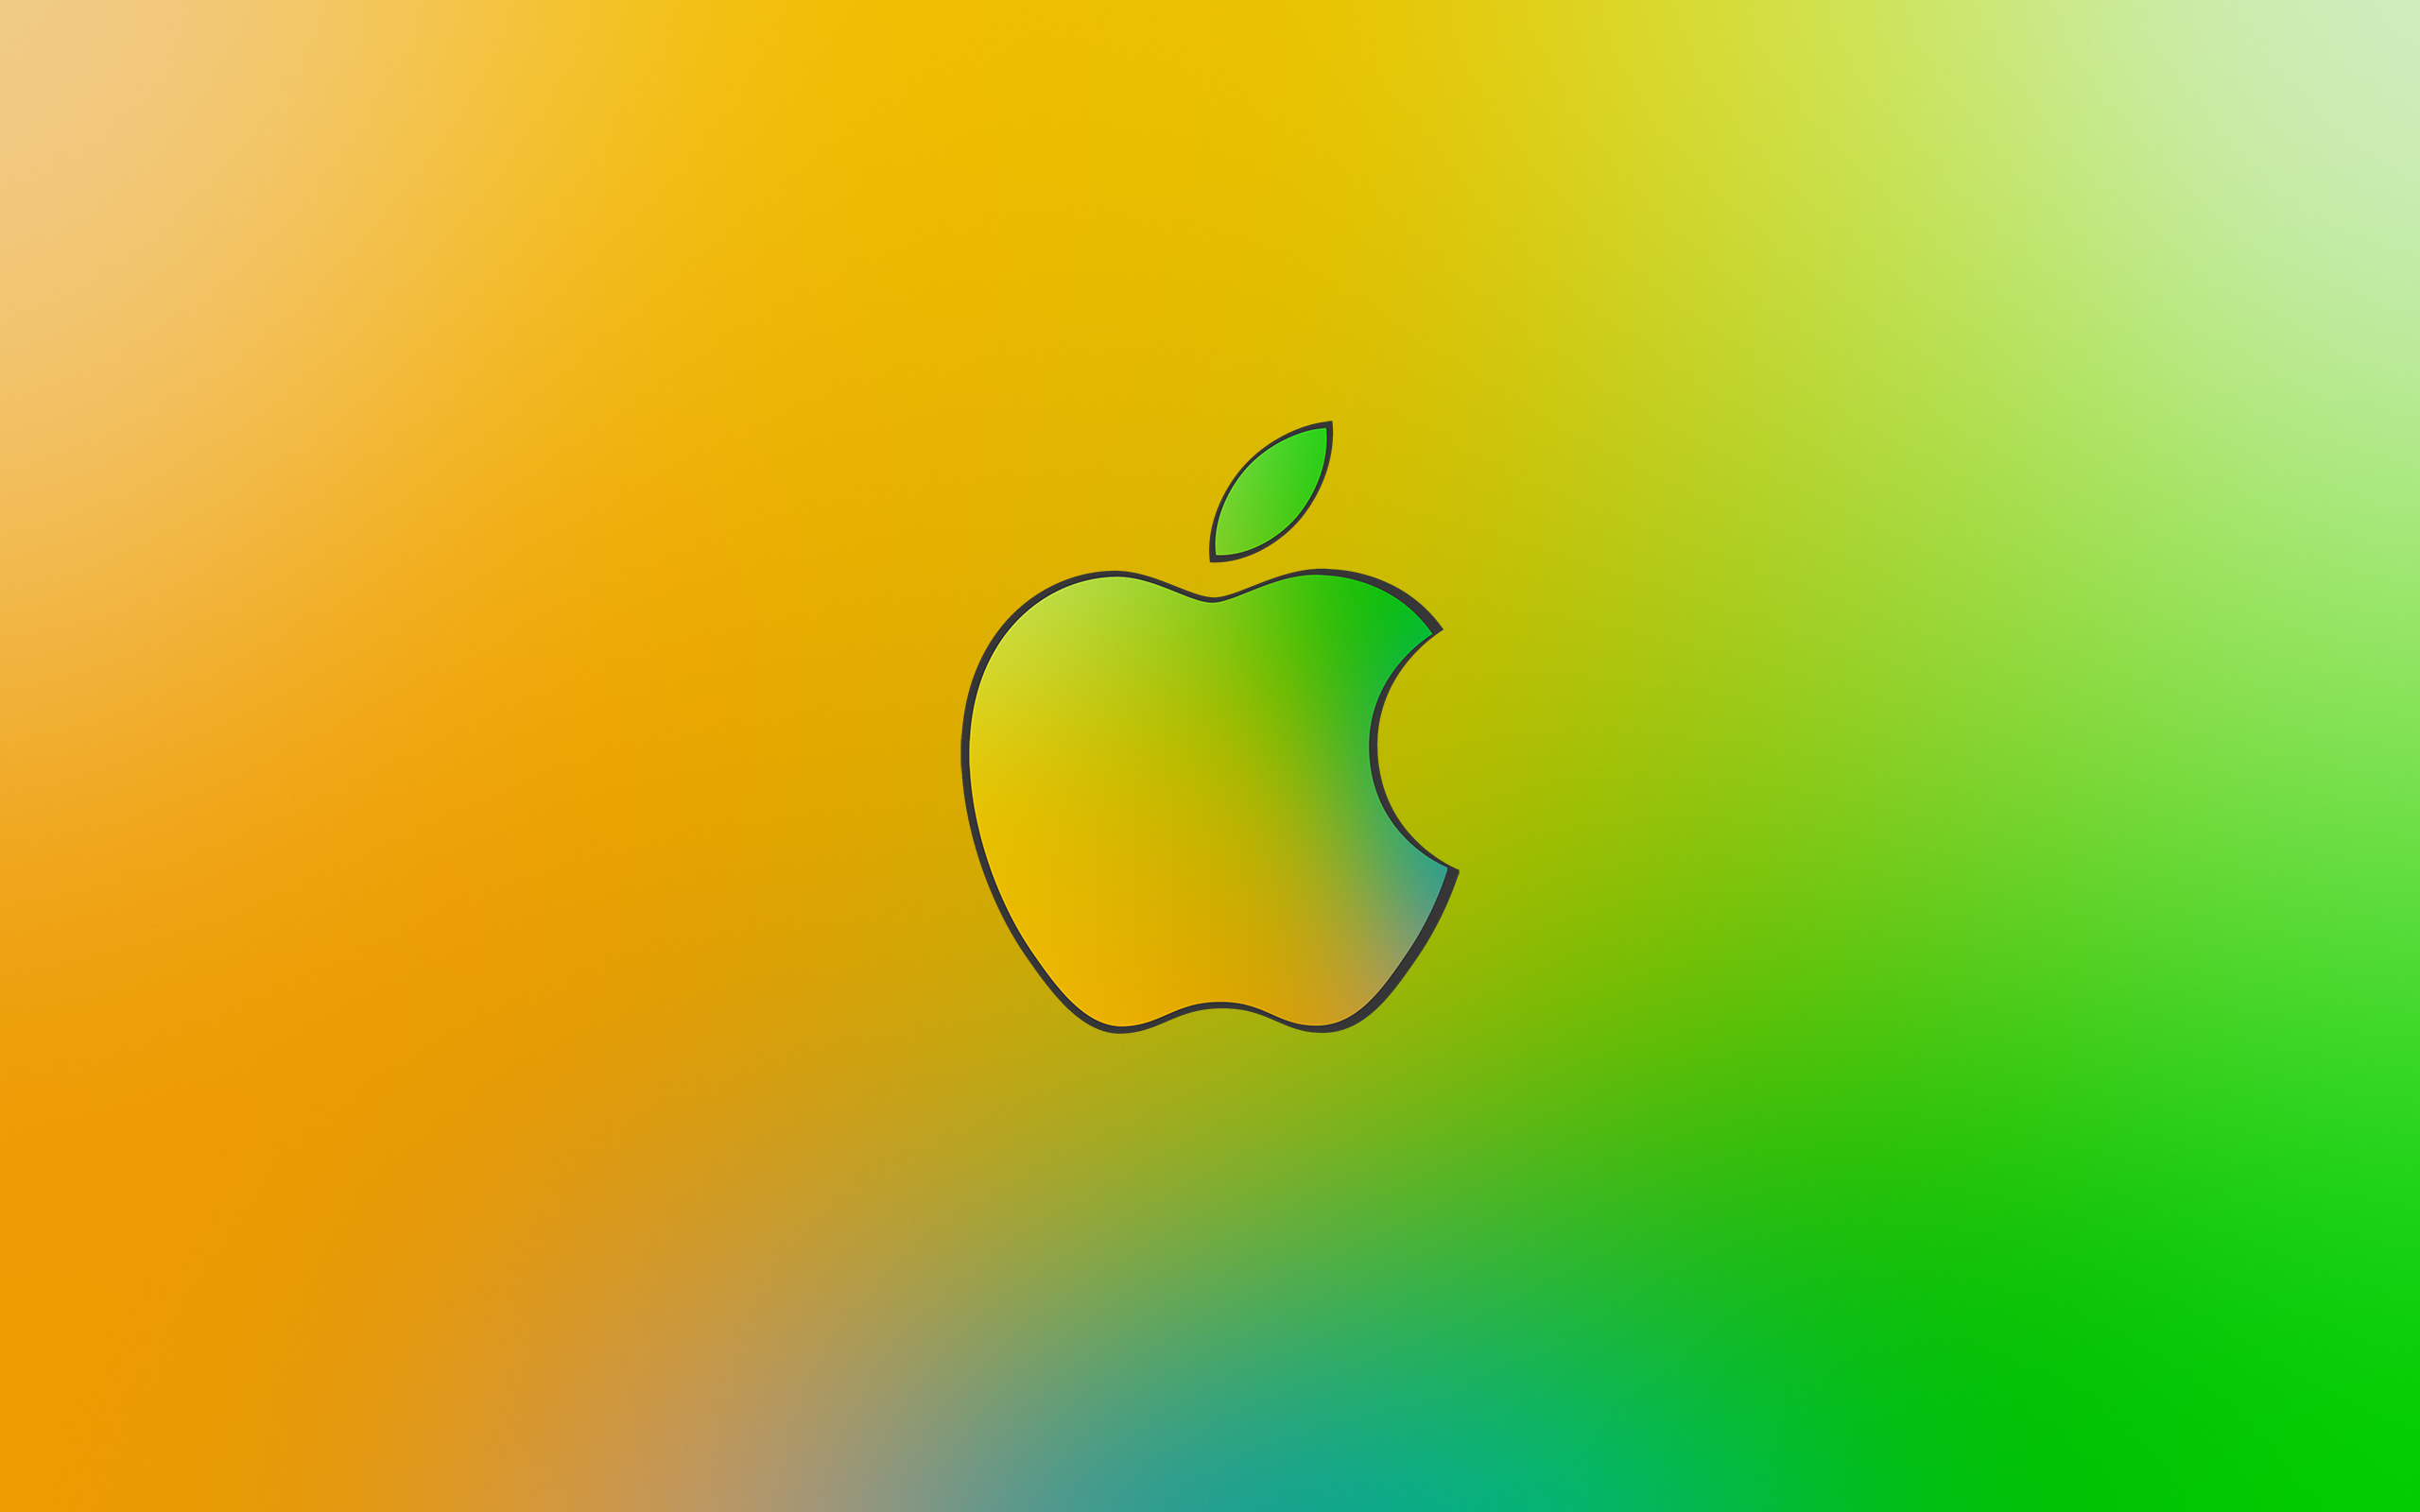 Free Wallpaper For Your Desktop And Ipad: Apple Card Wallpapers For IPhone, IPad, And Desktop